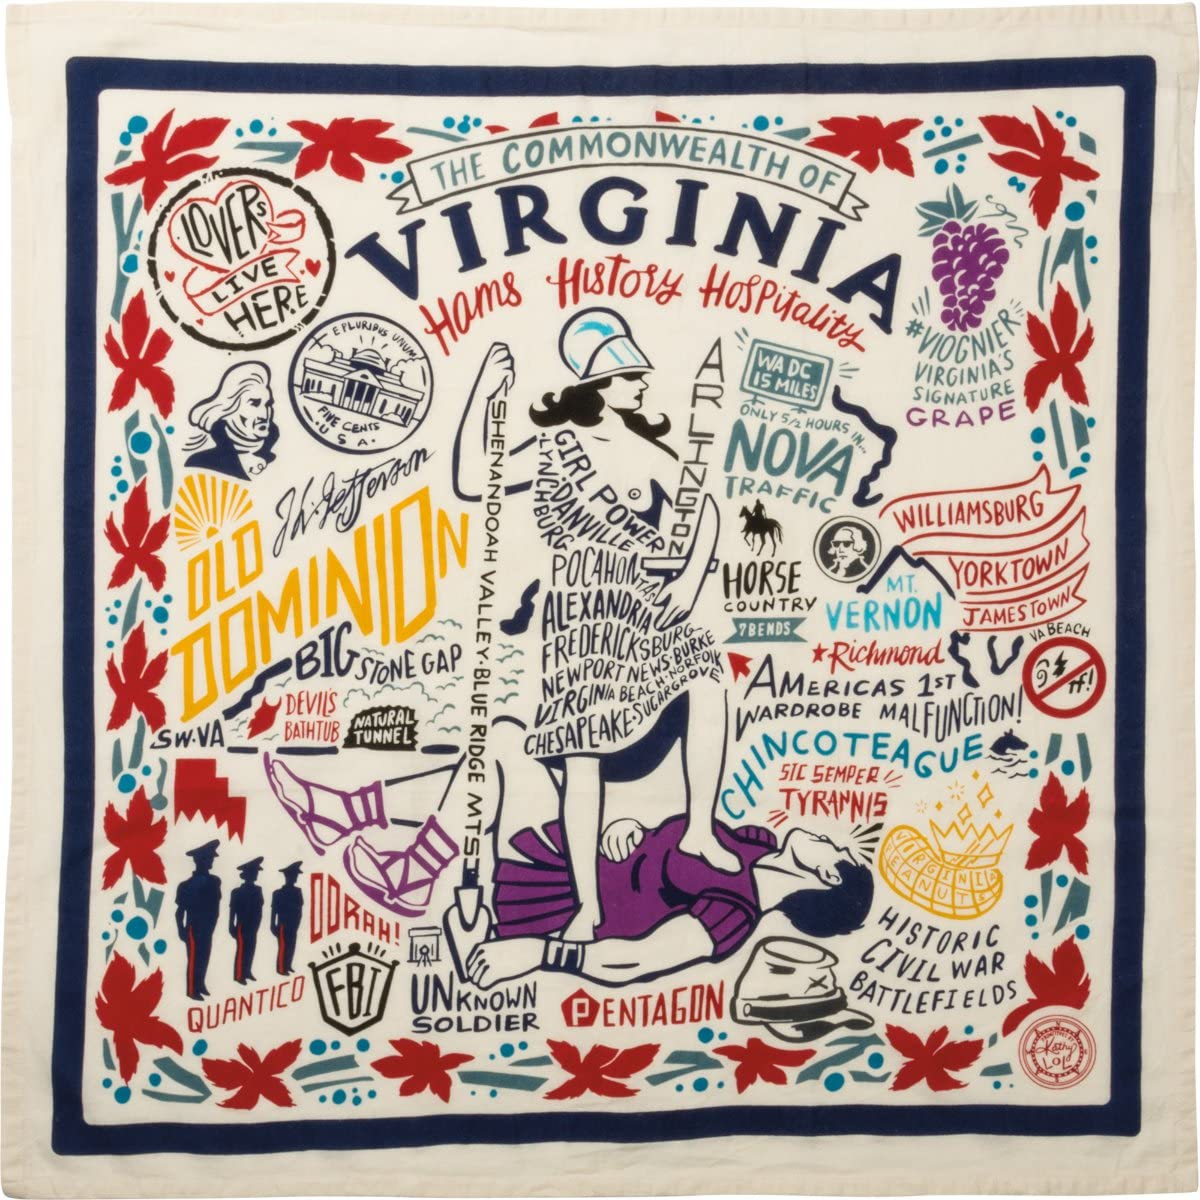 Image result for The dish virginia